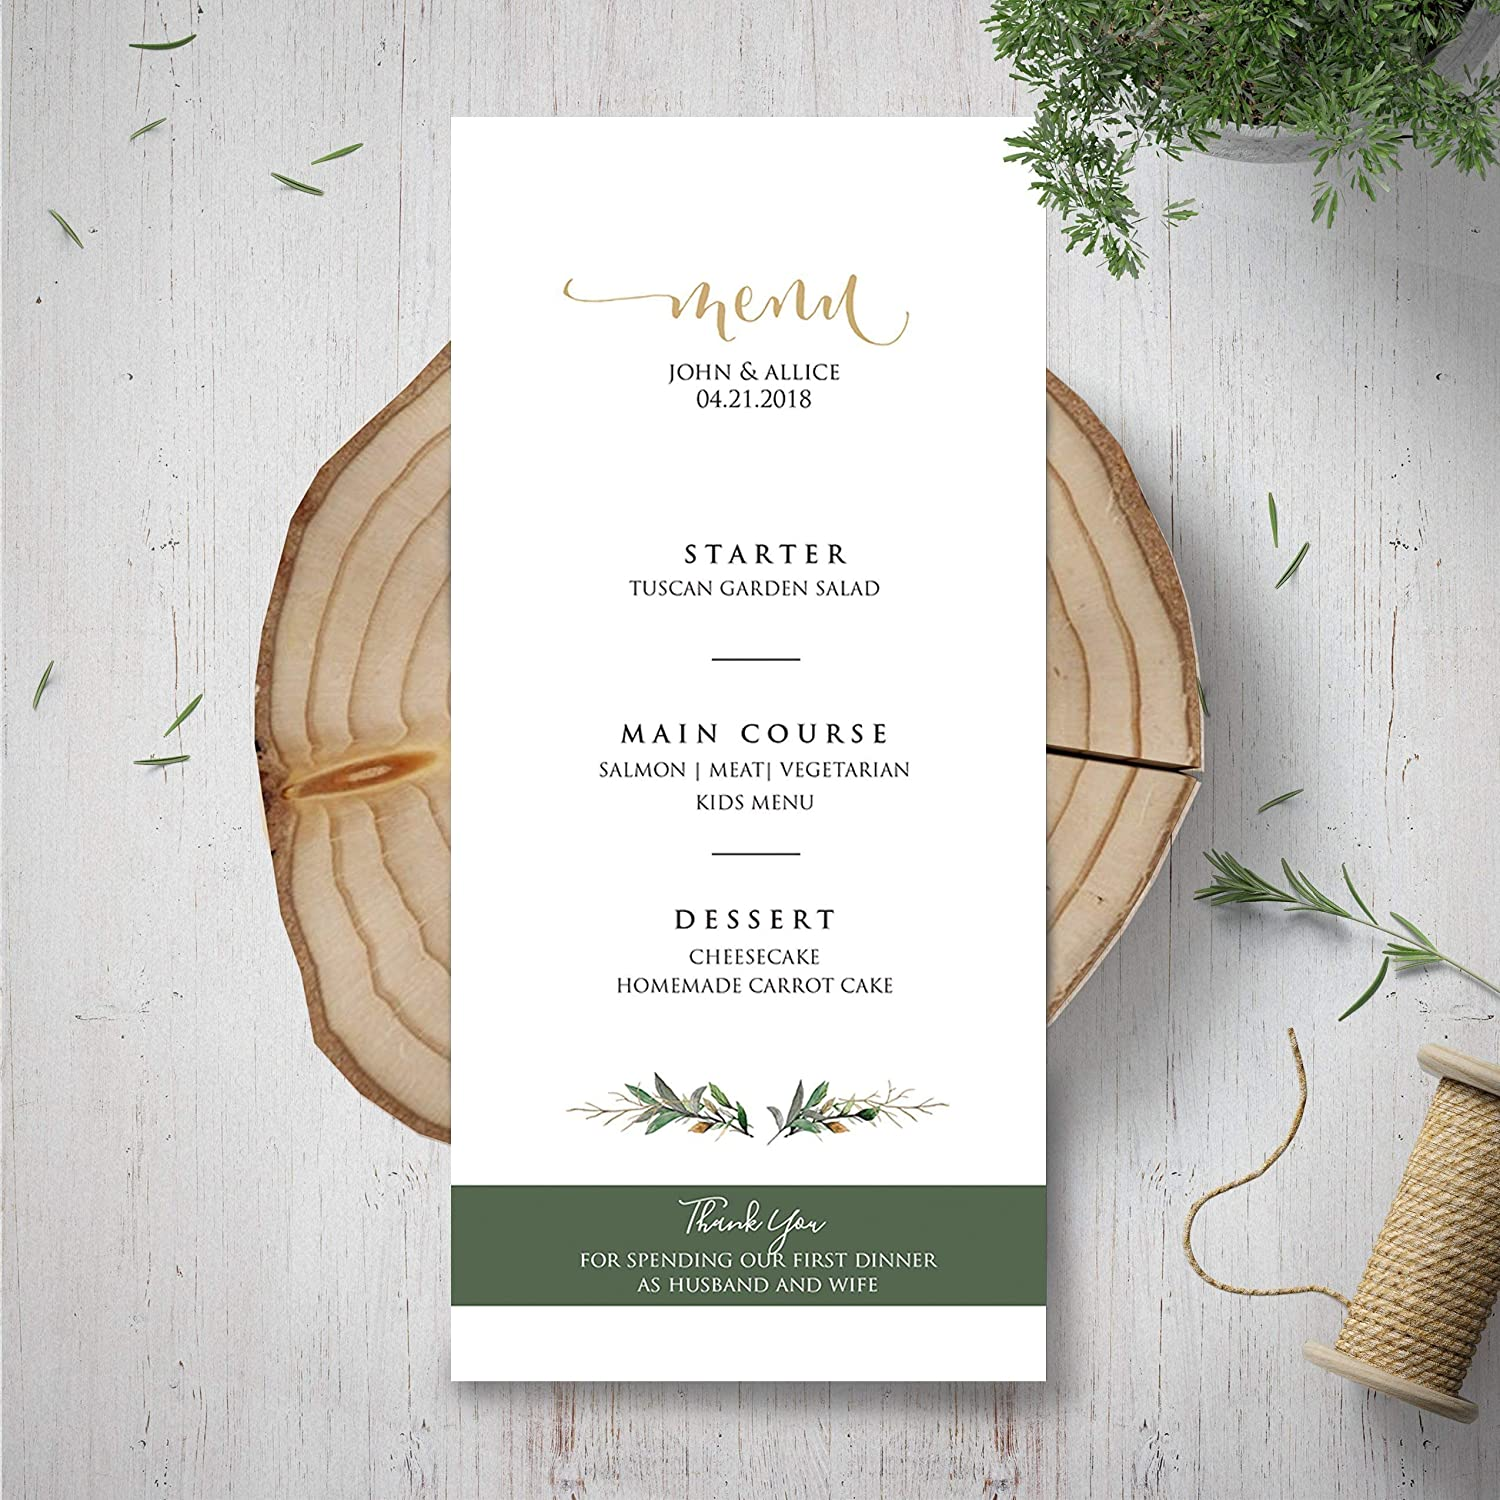 Wedding Menu Template.Amazon Com Wedding Menu Template Green Menu Card Garden Rustic